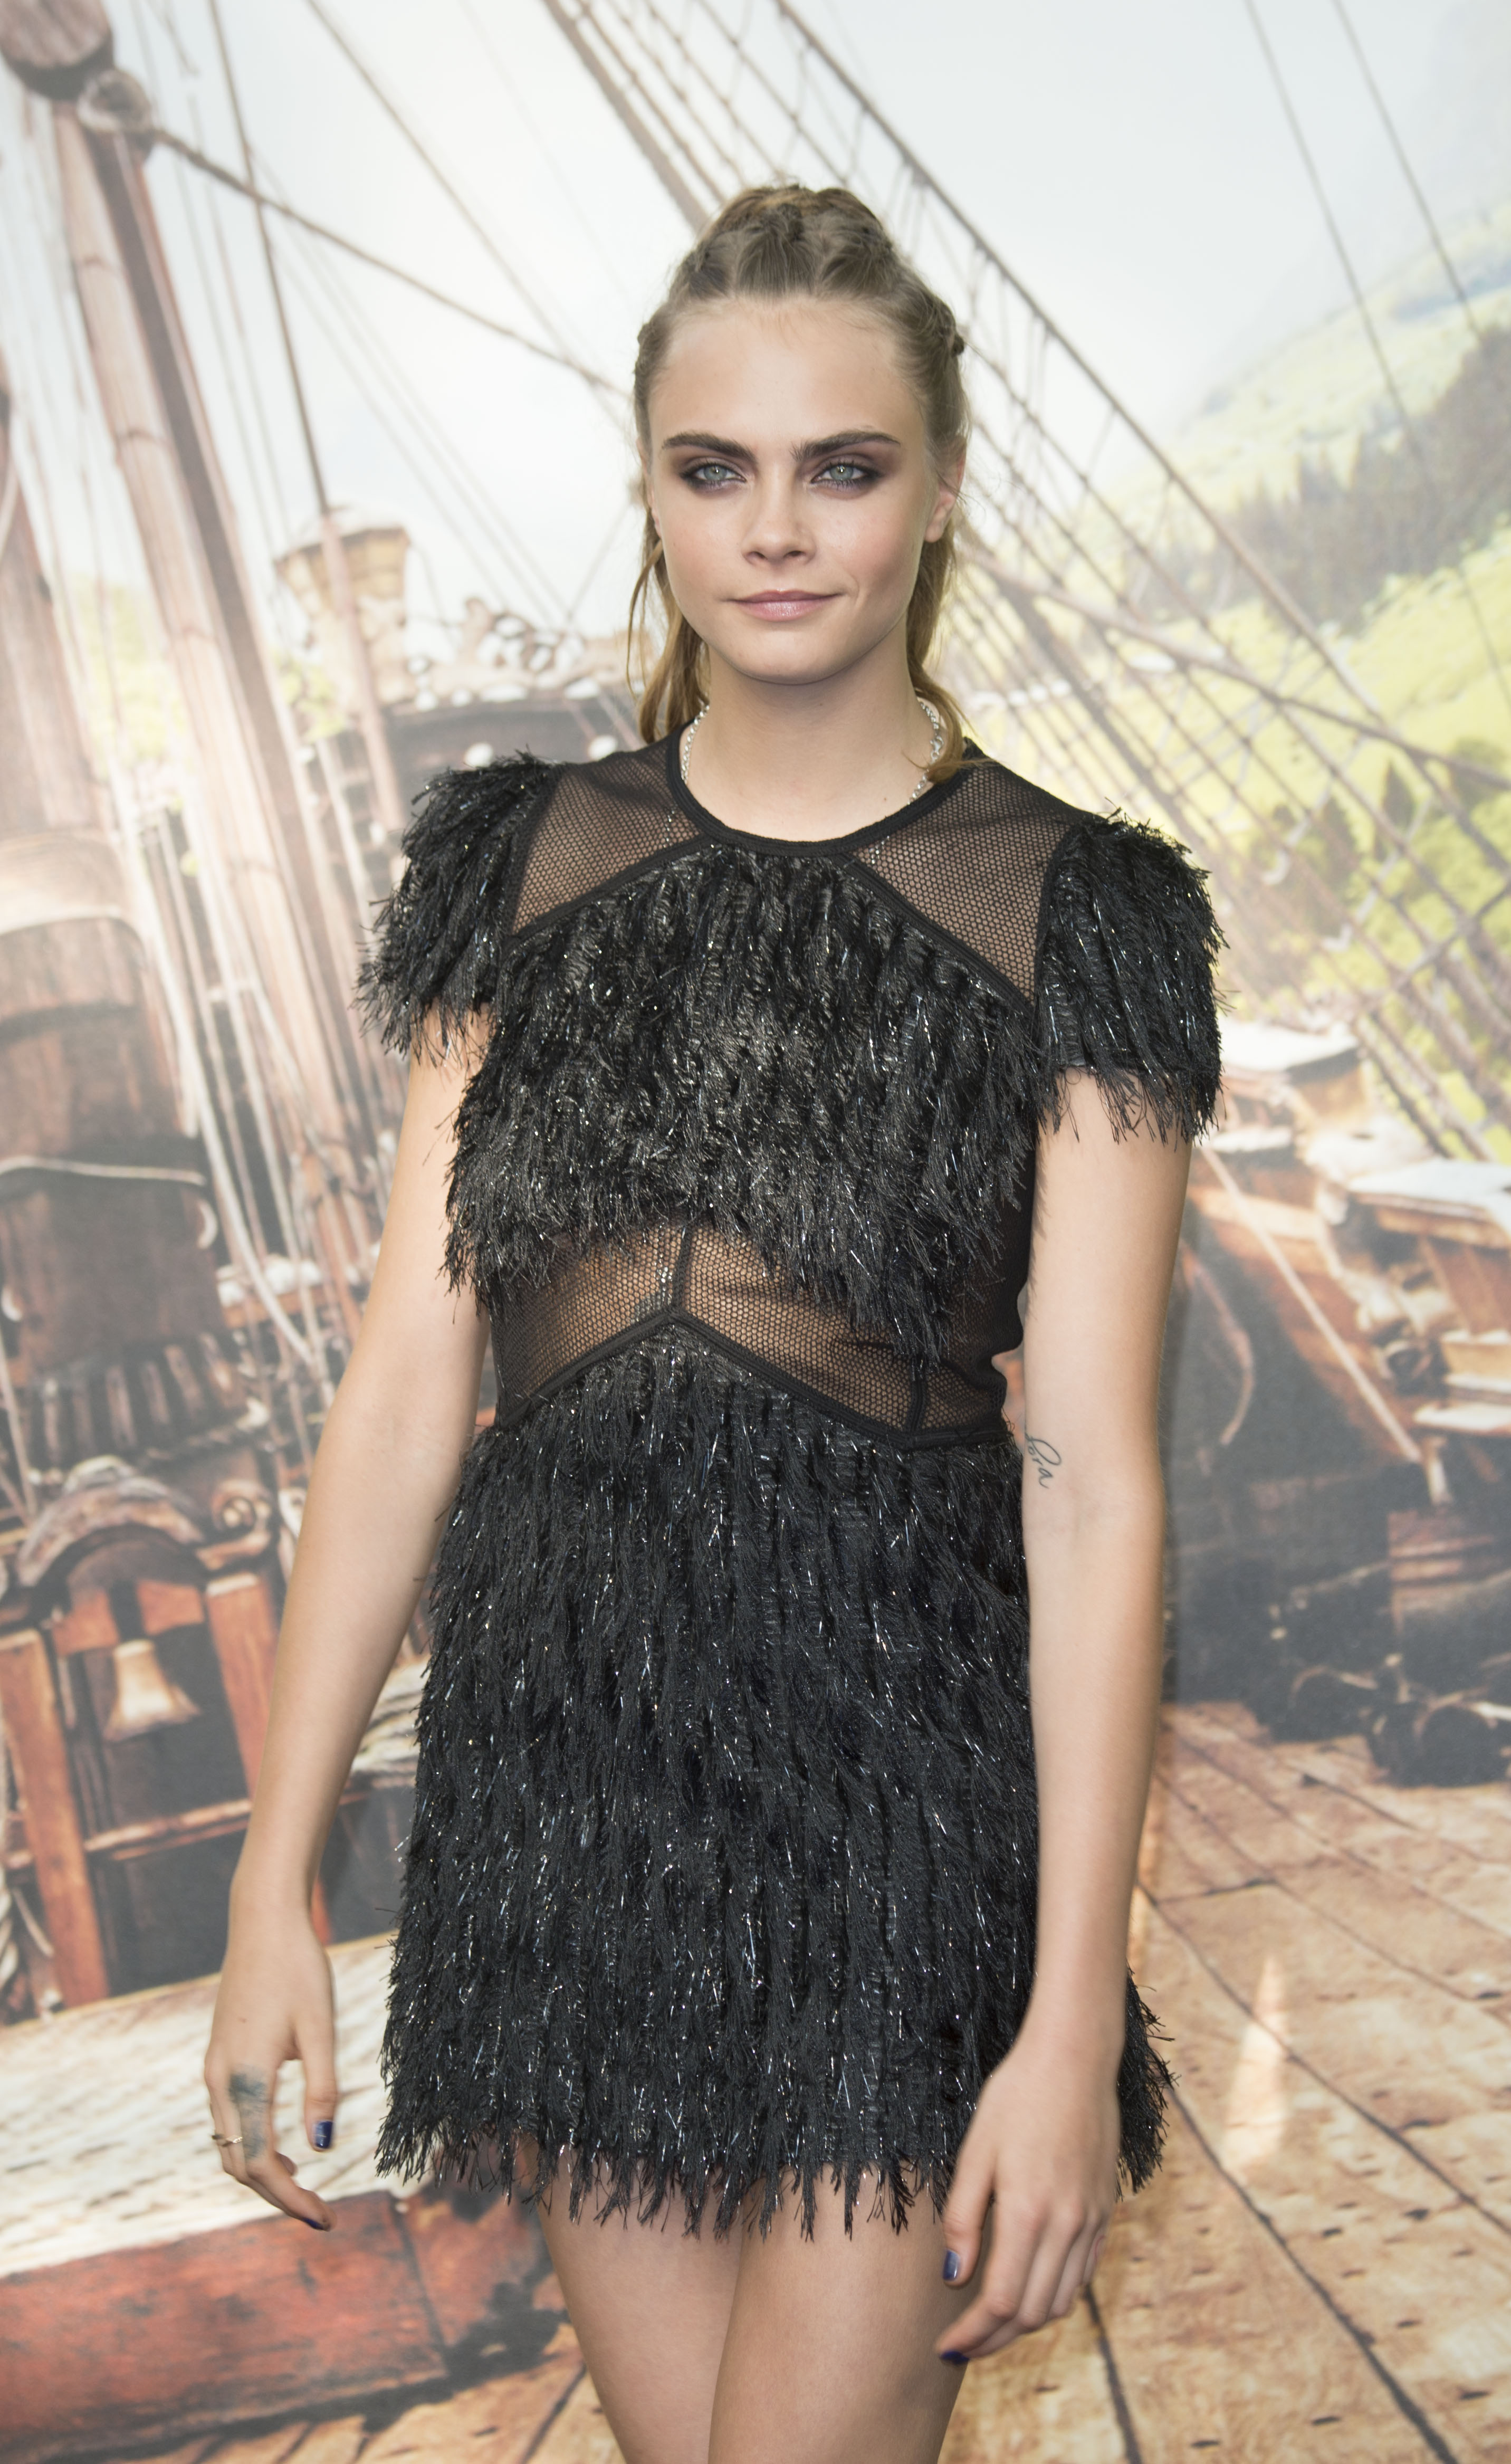 Cara delevingne upskirt new picture